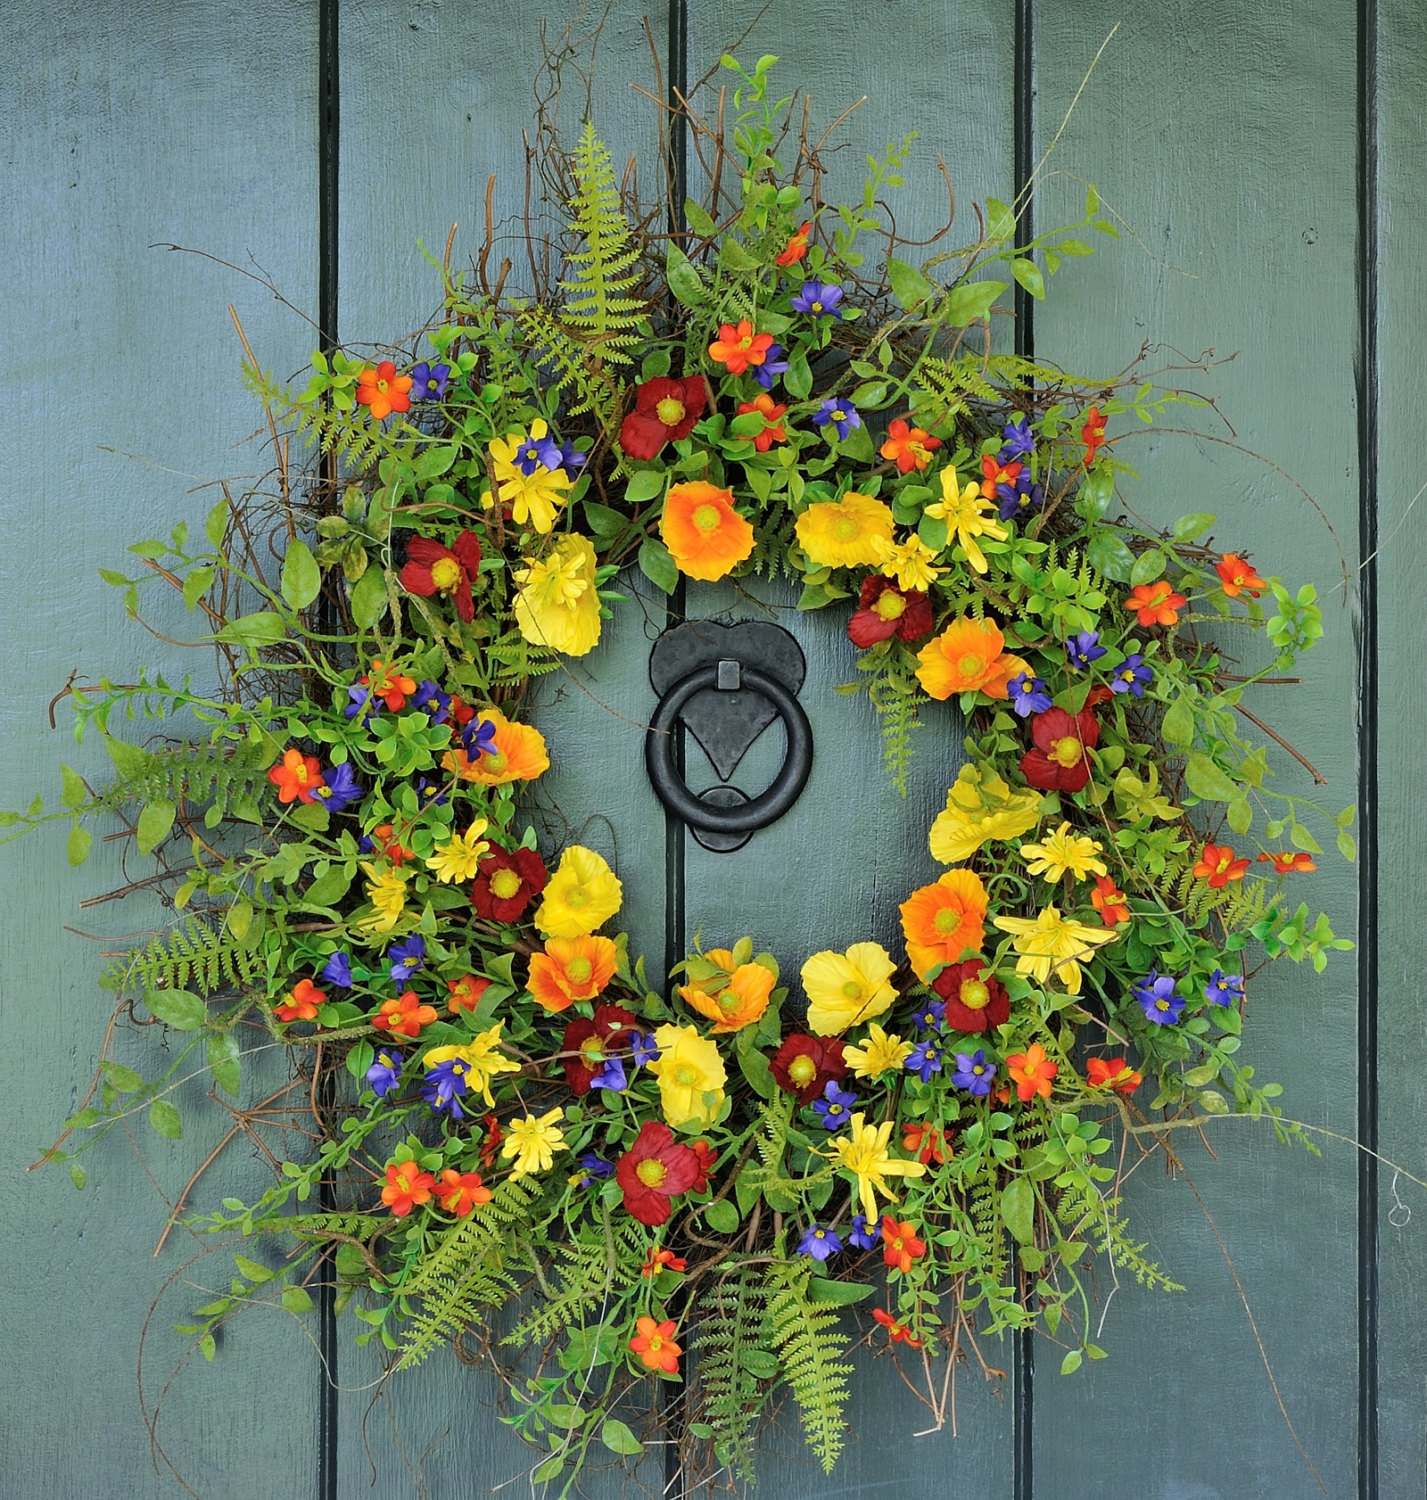 Decorating Wreaths: 15 Joyful Handmade Spring Wreath Ideas To Decorate Your